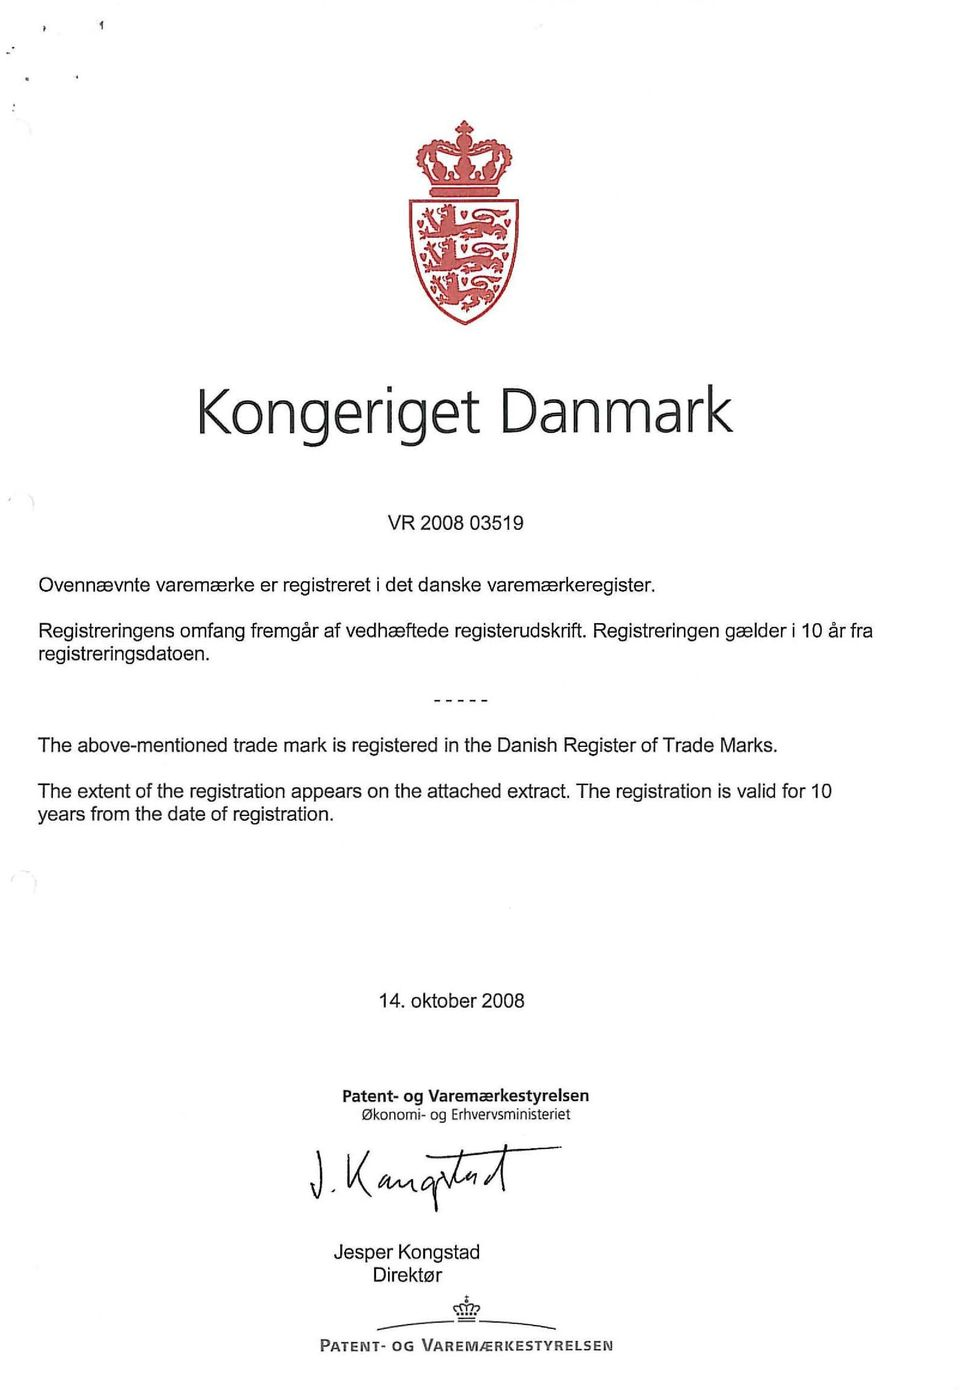 The above-mentioned trade mark is registered in the Danish Register of Trade Marks. The extent of the registration appears on the attached extract.